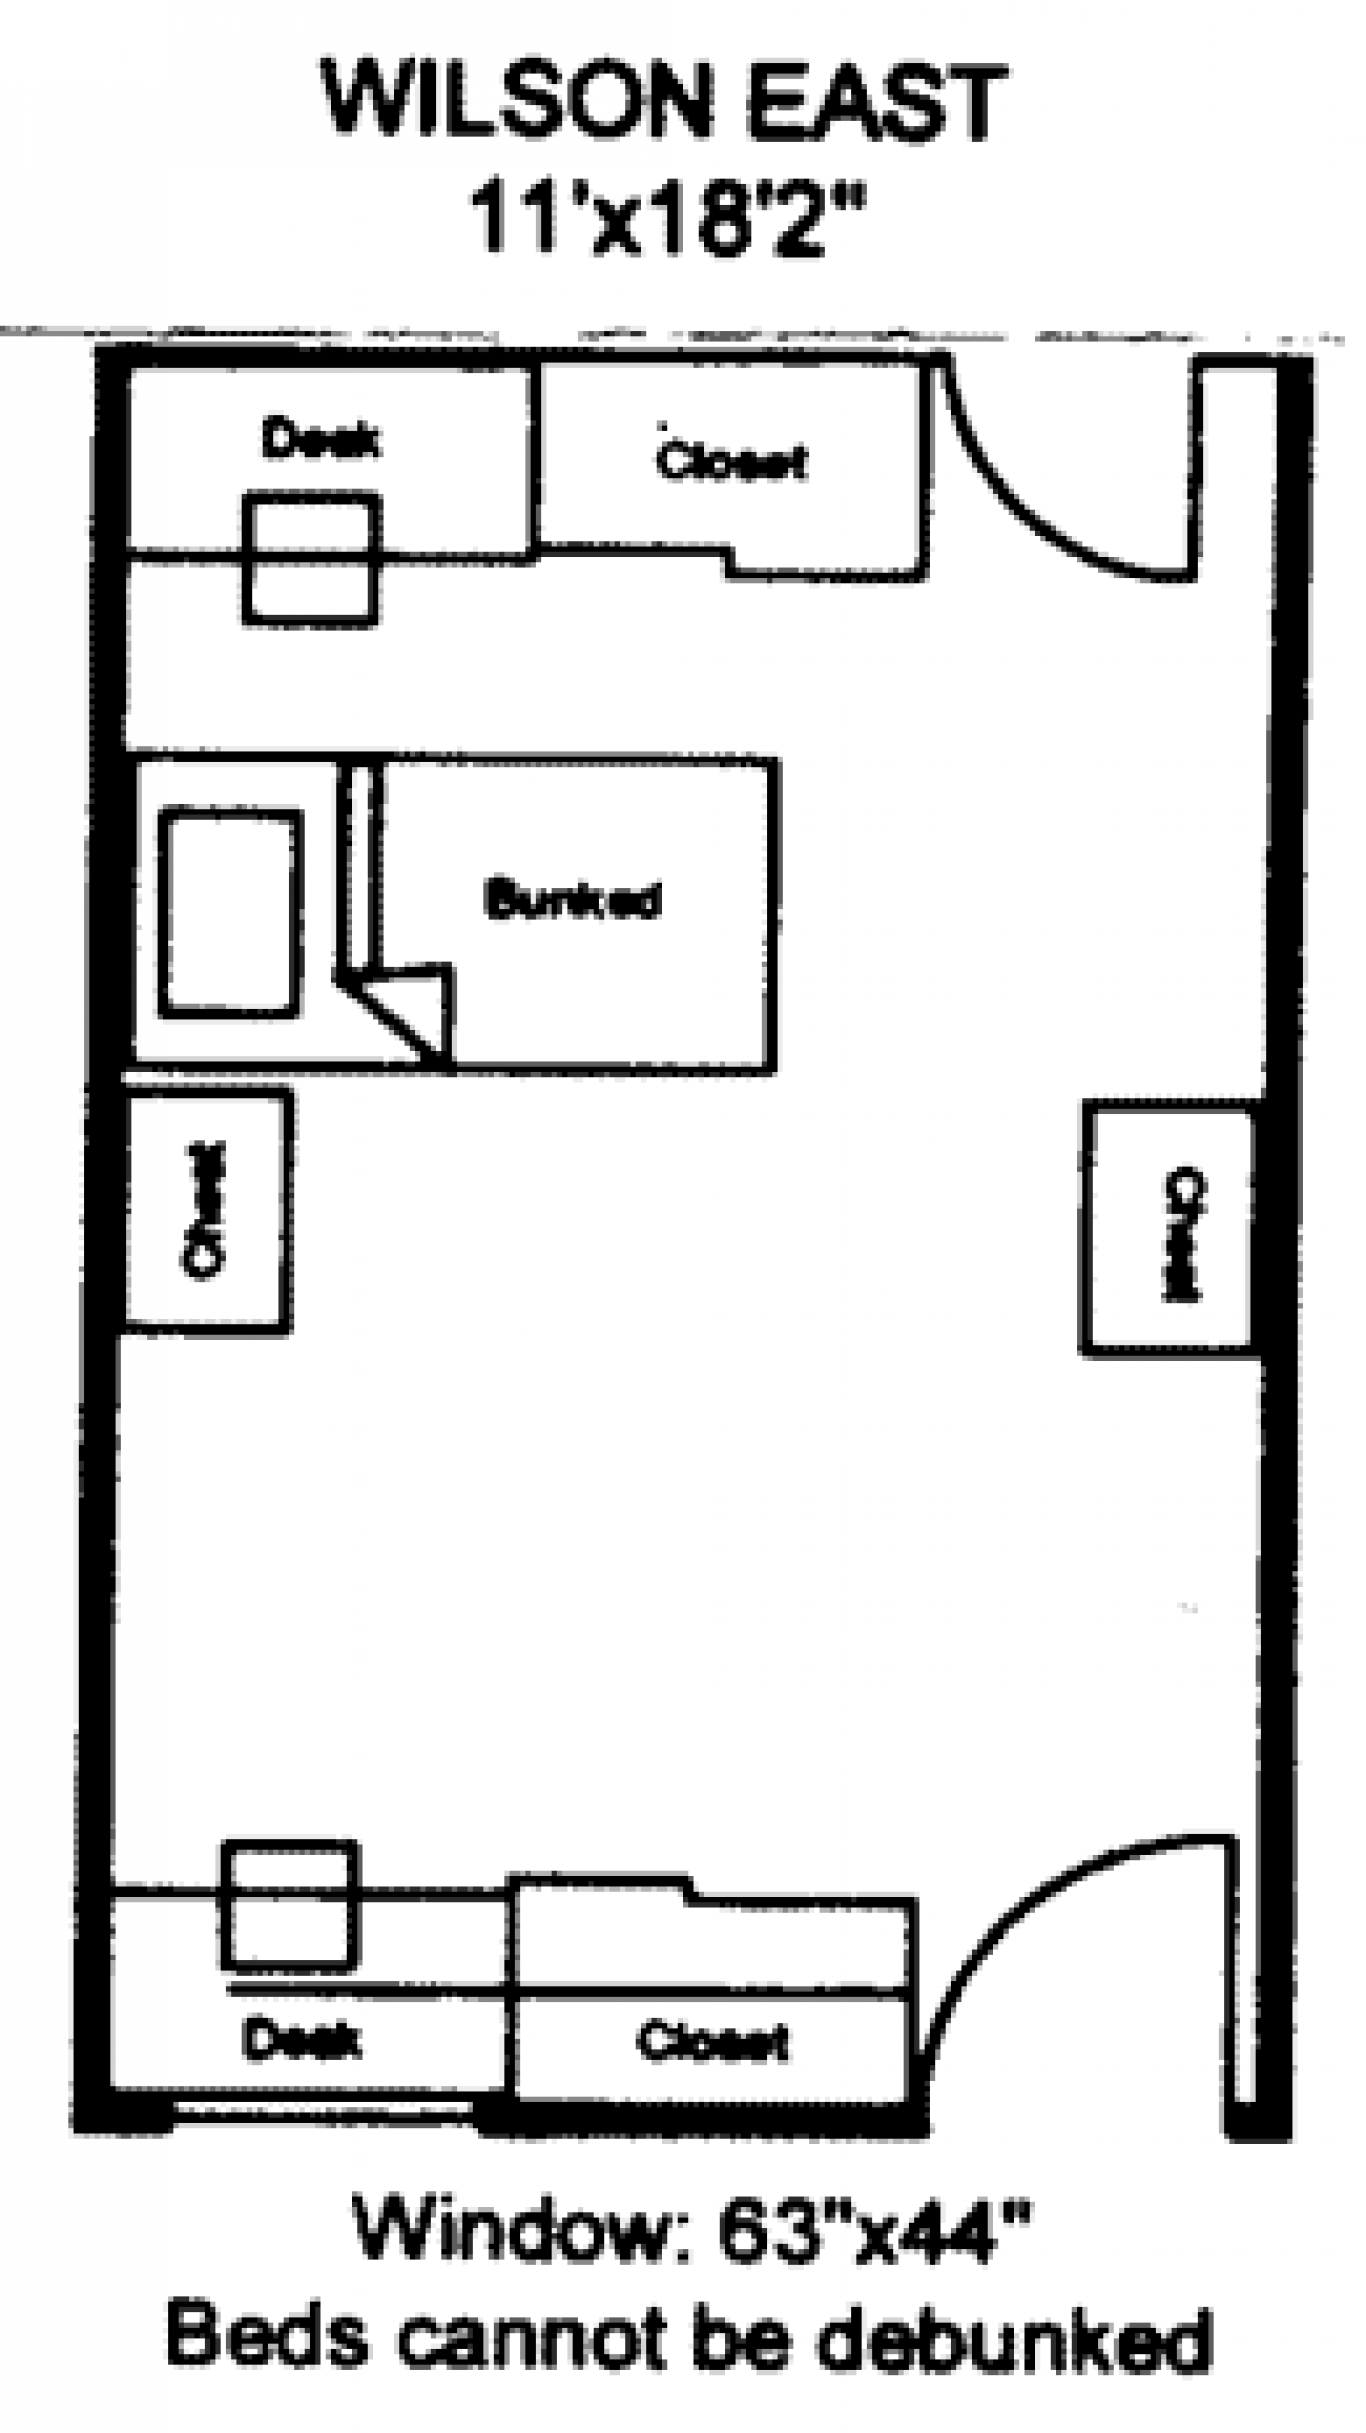 Wilson East floorplan